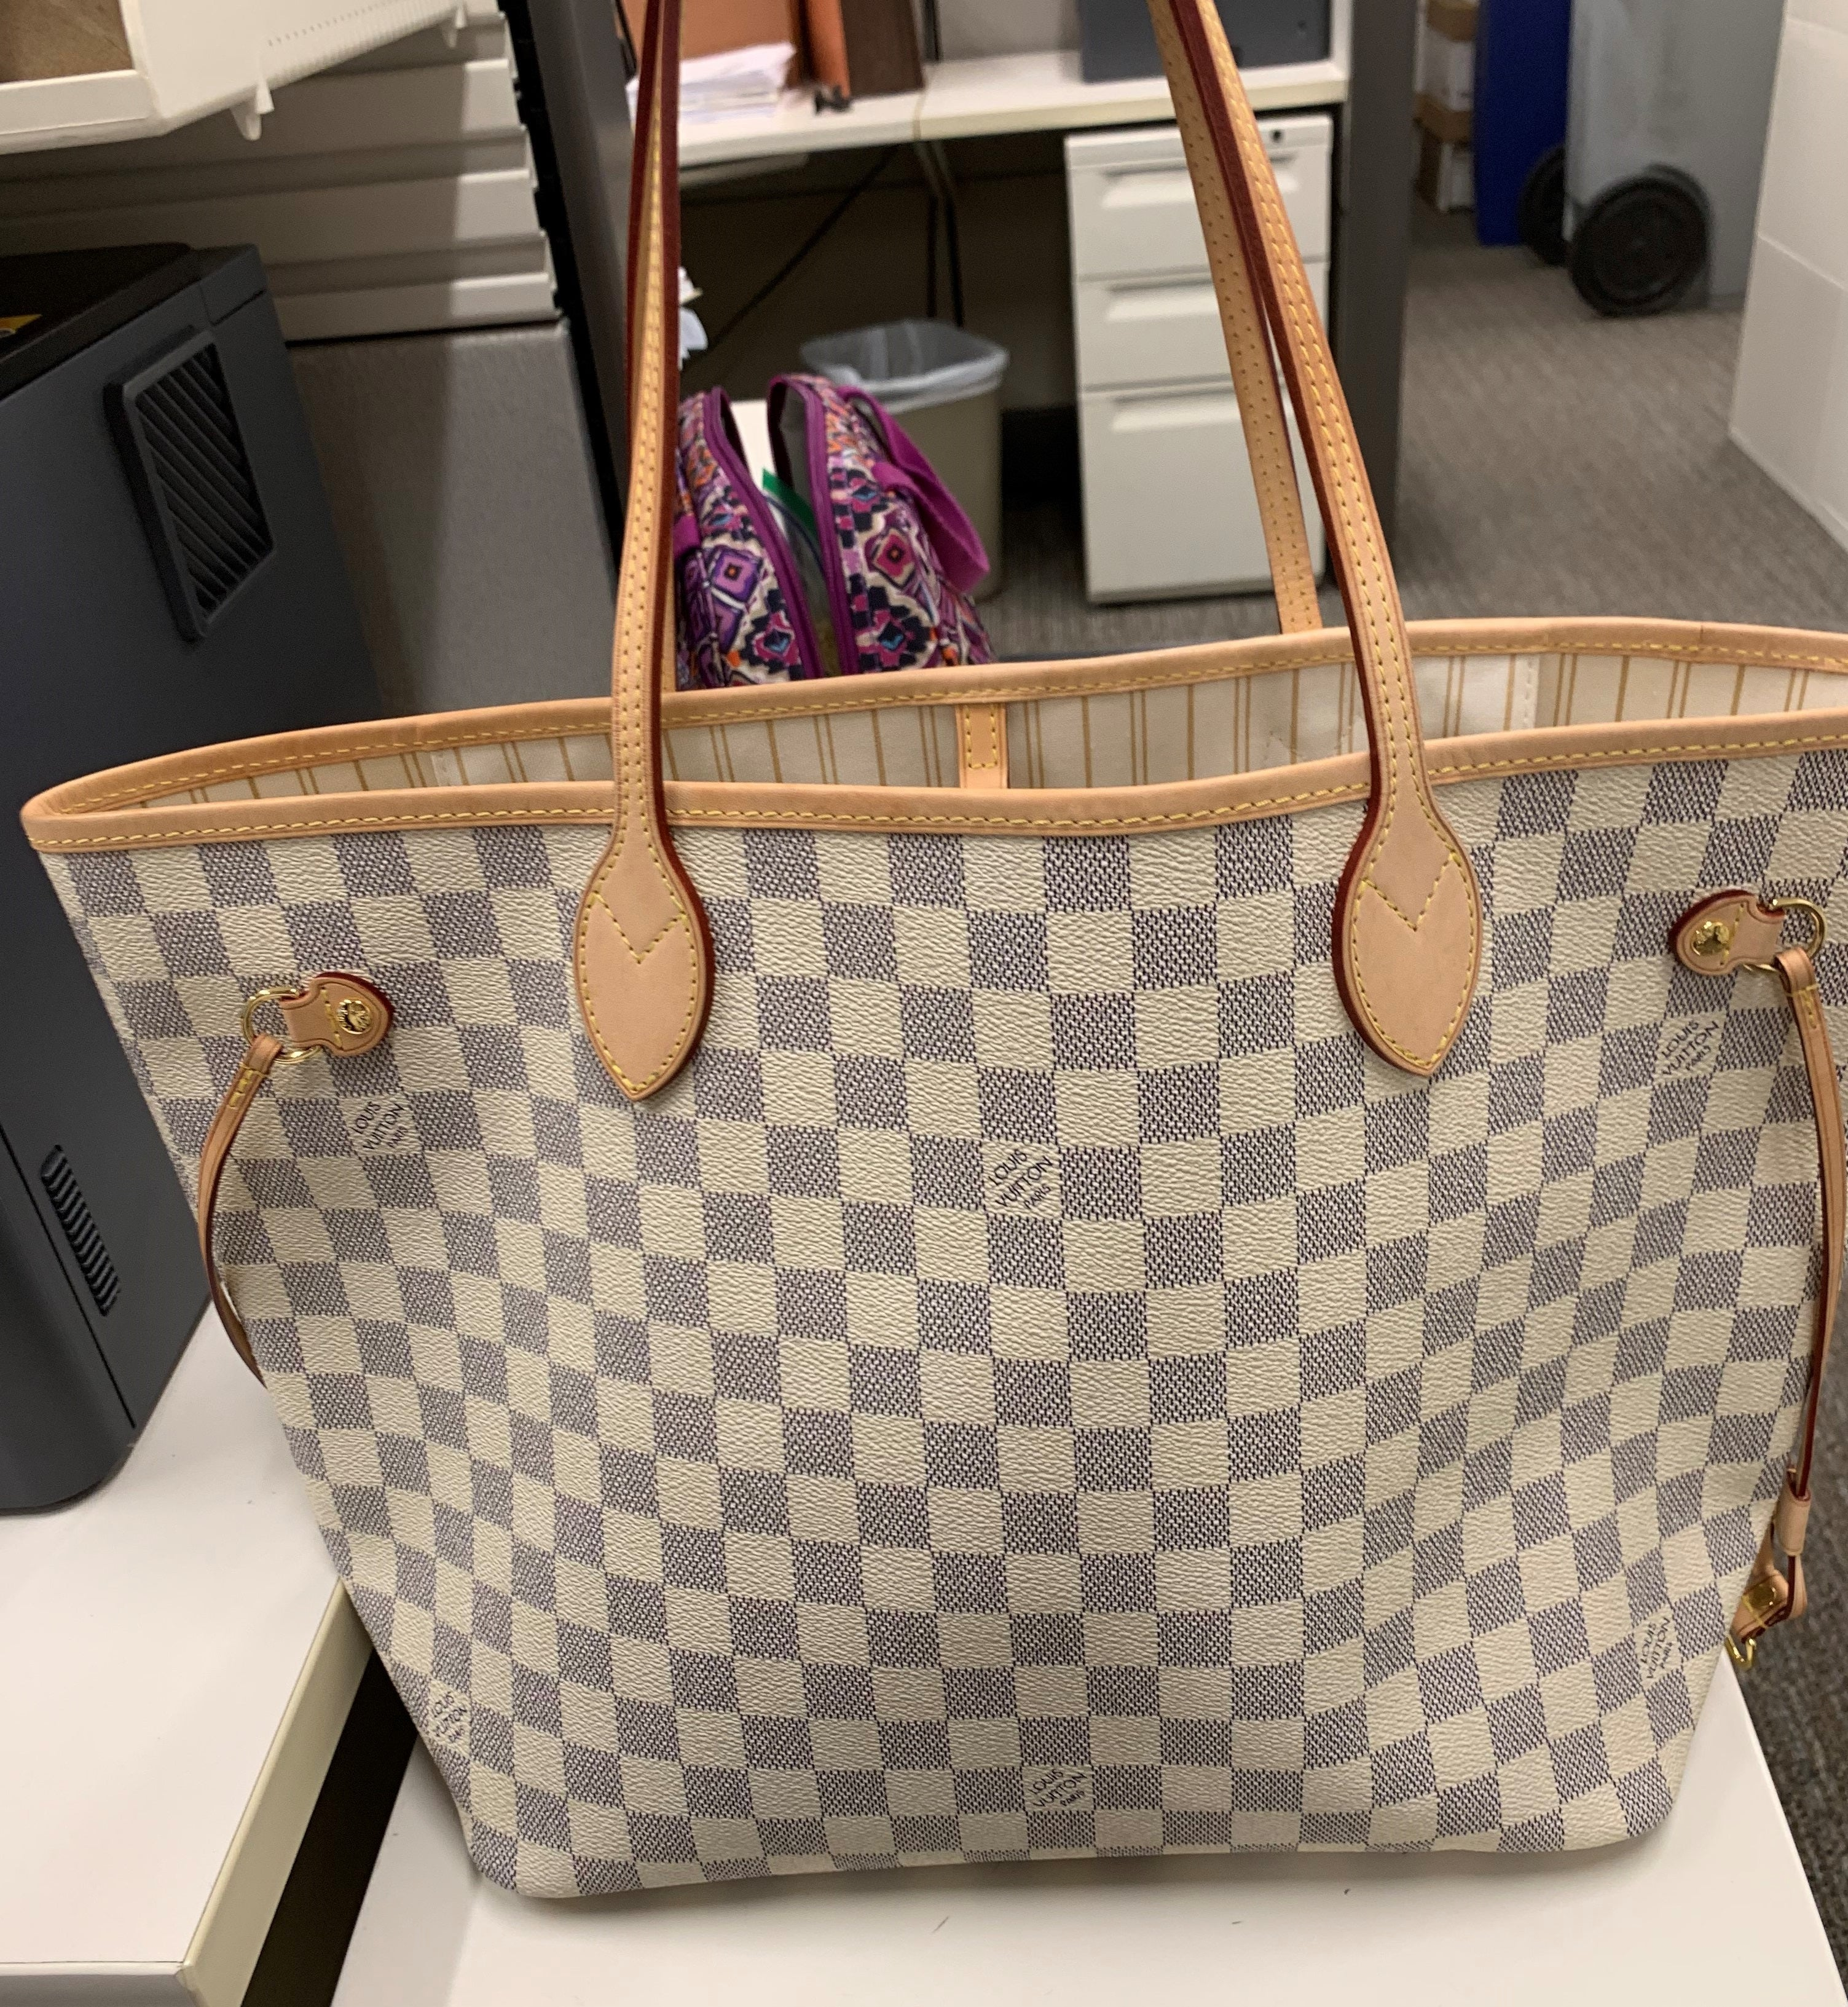 Fake Louis Vuitton Neverfull vs Real: Important Details You Should Definitely Pay Attention To (With Photo Examples) fake Neverfull Damier Azur front view